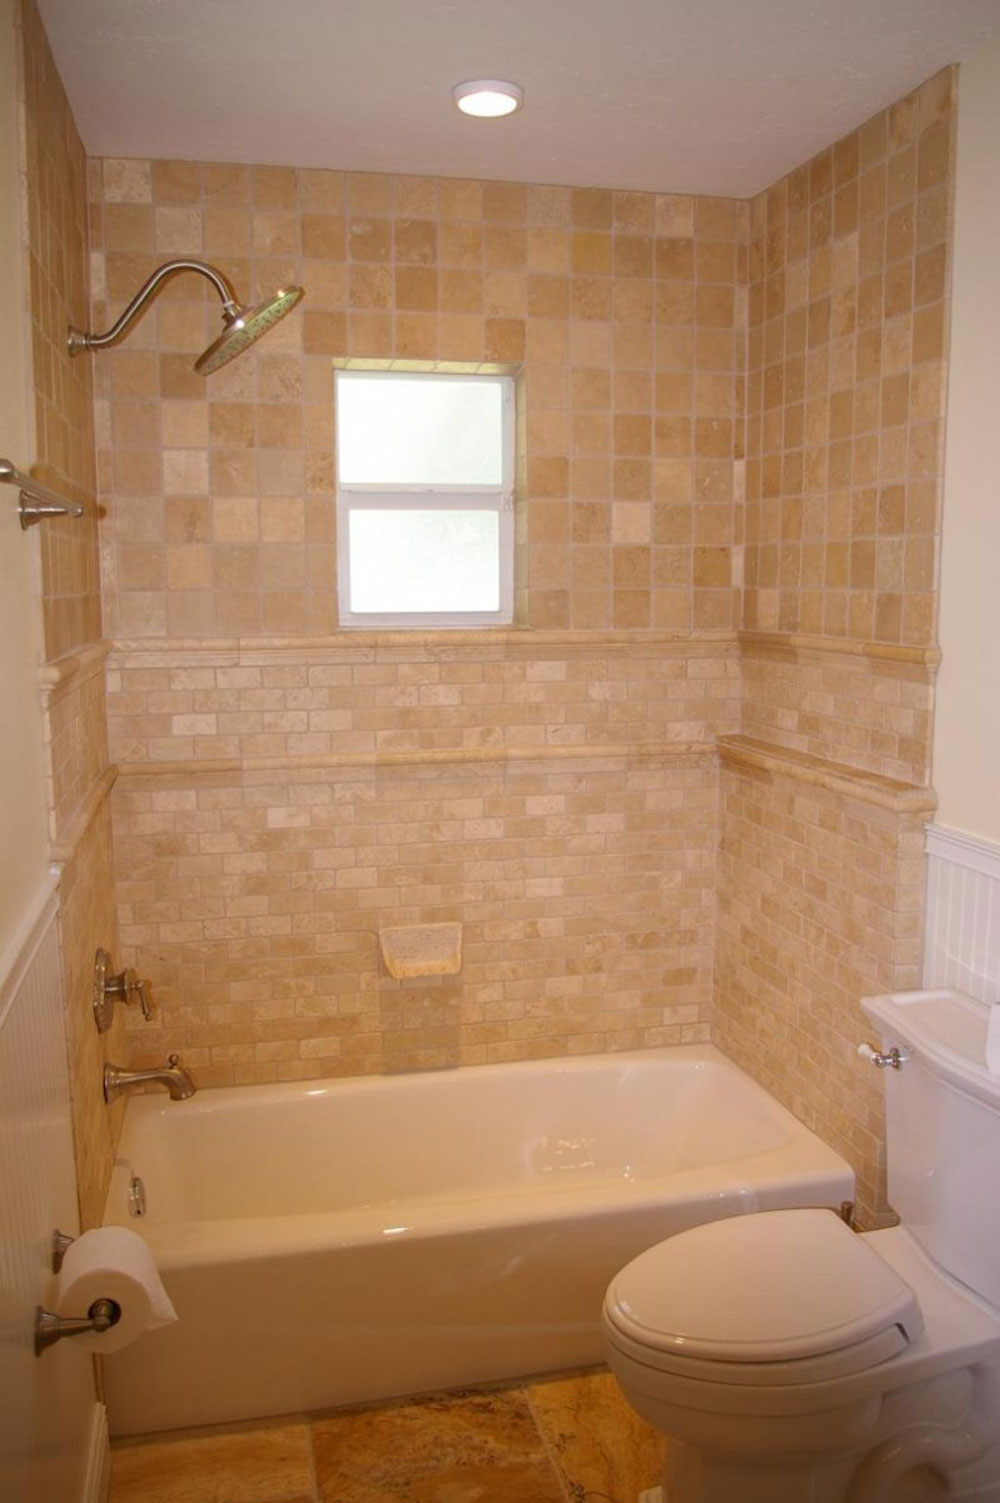 How To Decorate A Small Bathroom And Still Save Space 3 How To Decorate A Small Bathroom And Still Save Space